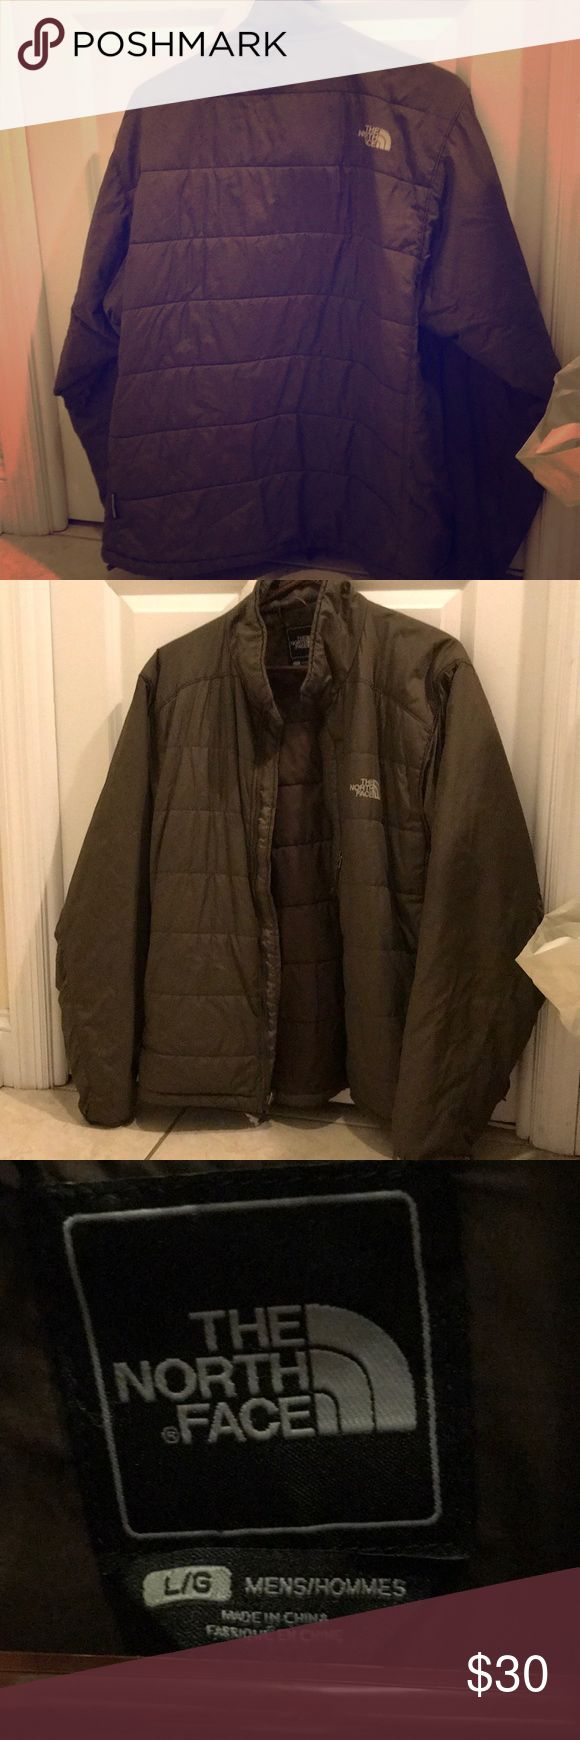 The North Face brown down jacket Warm winter jacket! Older model but fairly lightly worn. The North Face Jackets & Coats Puffers